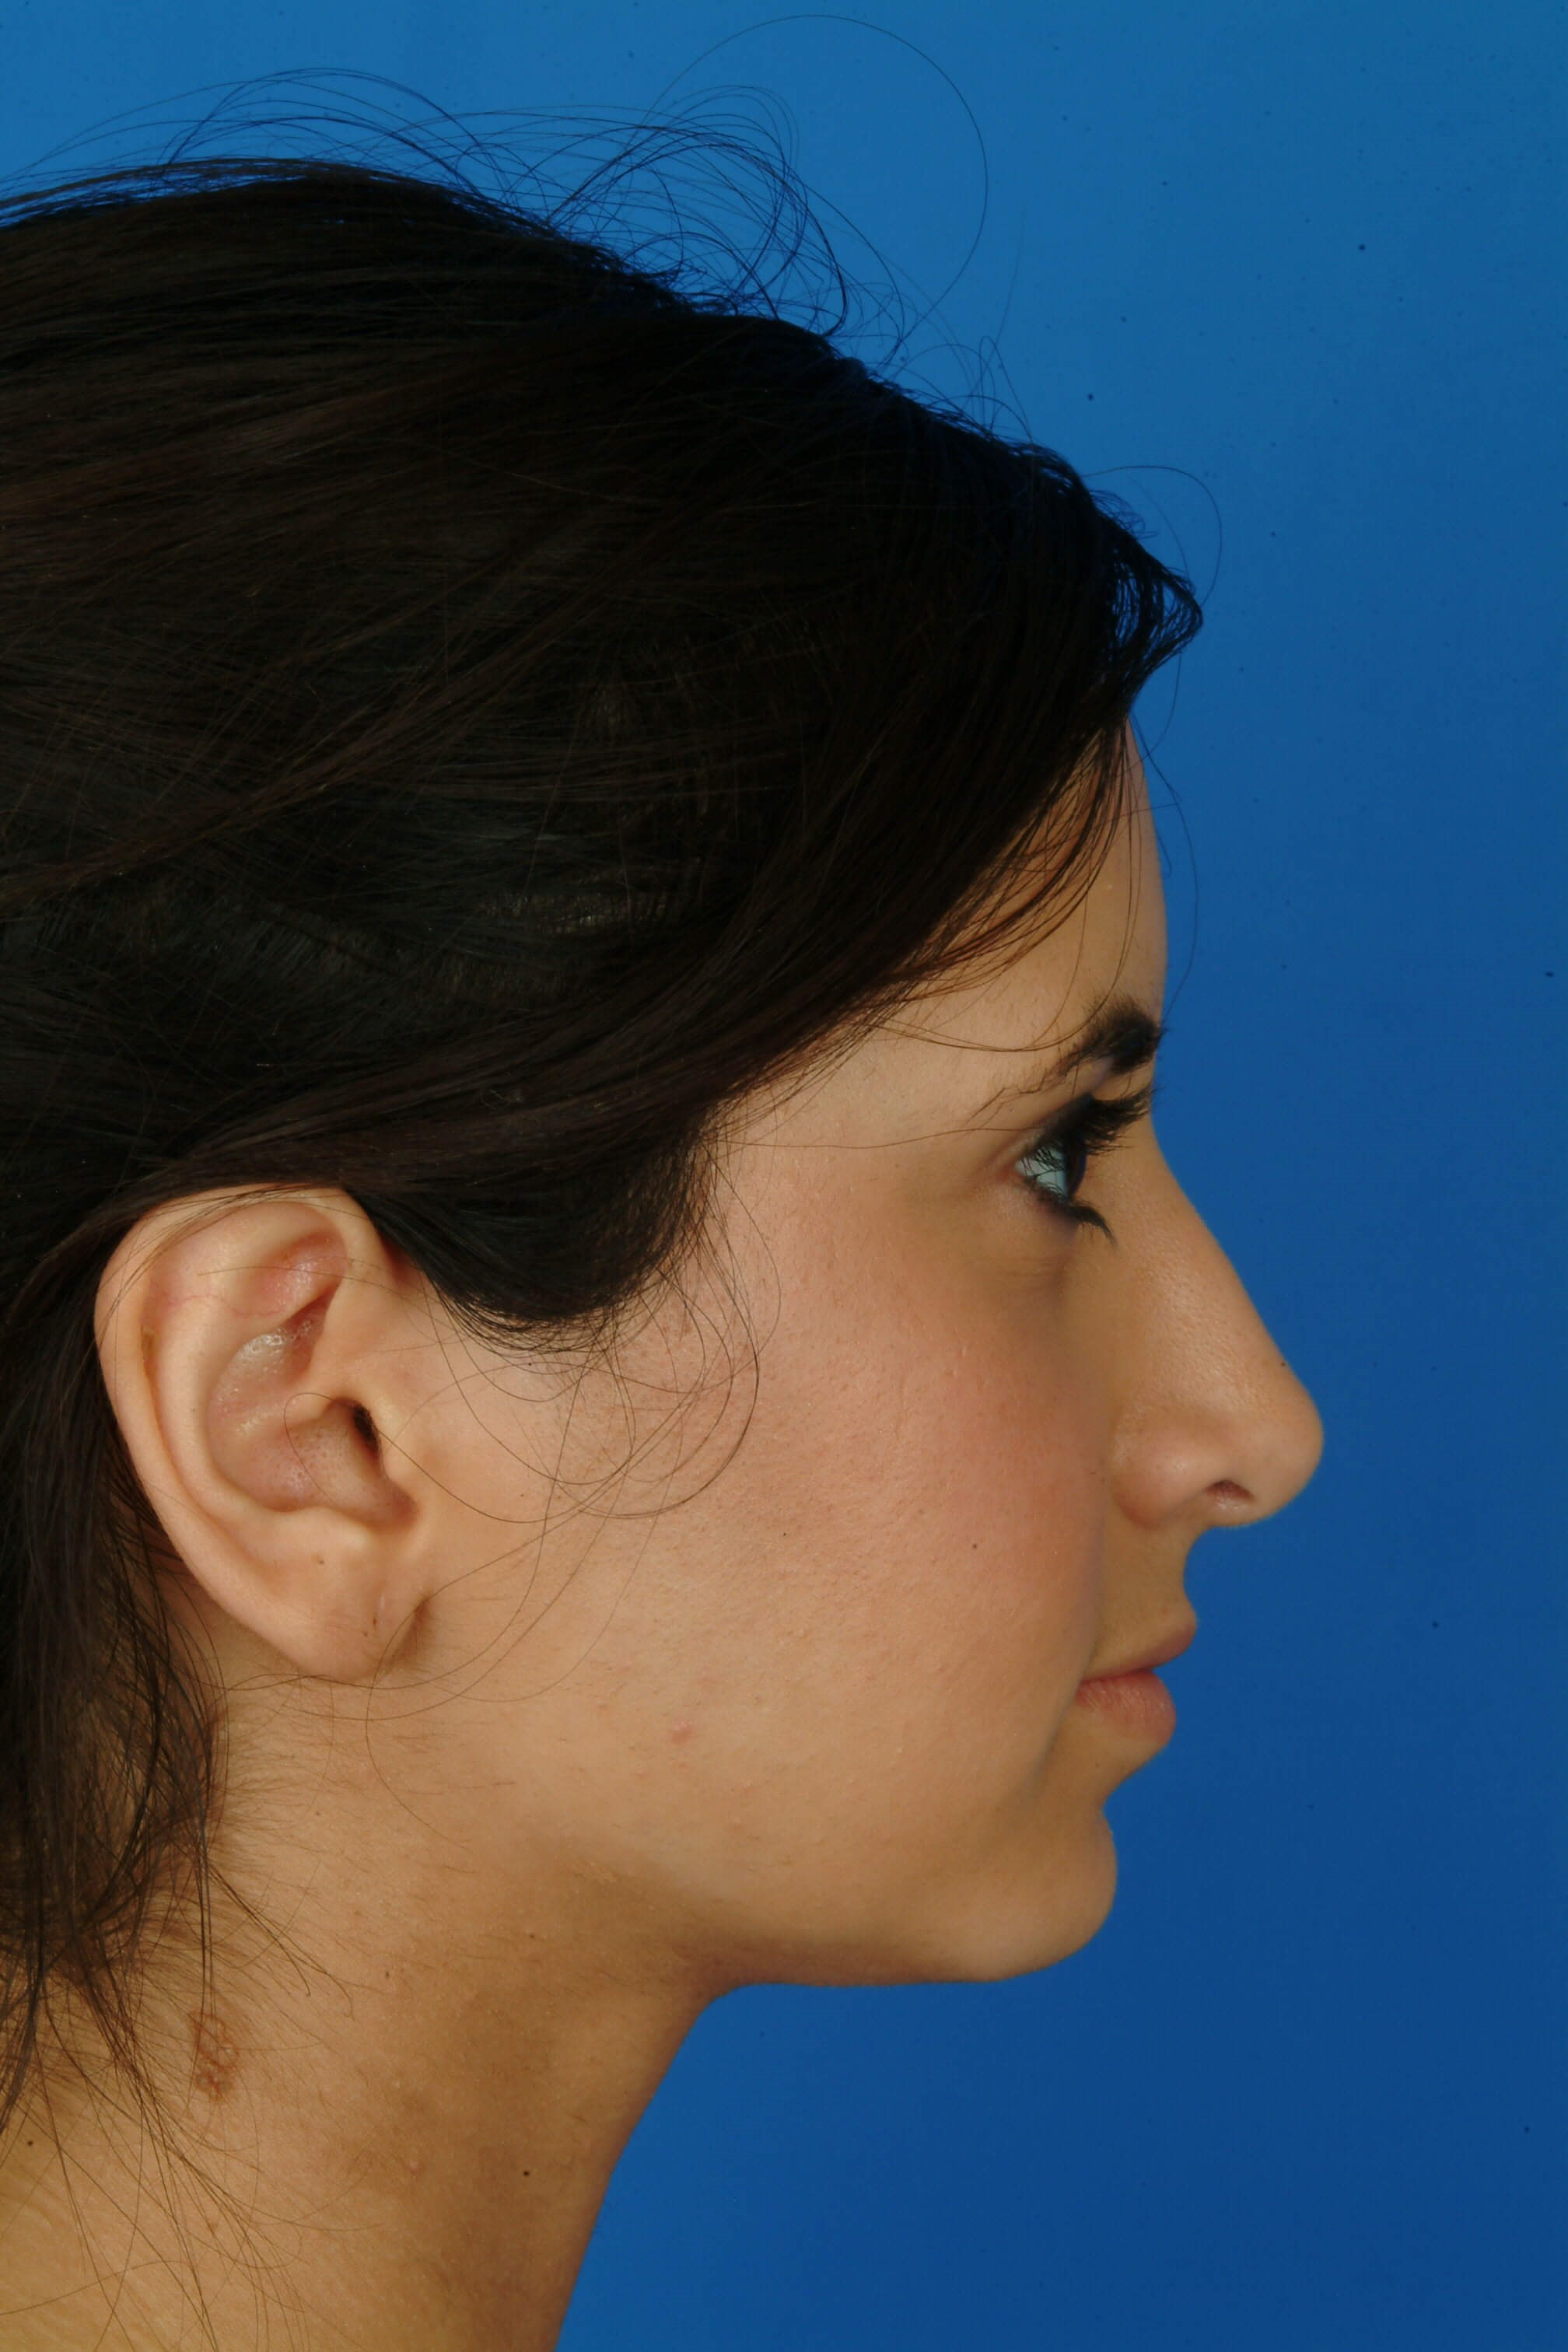 Profile View After Rhinoplasty (9 months)